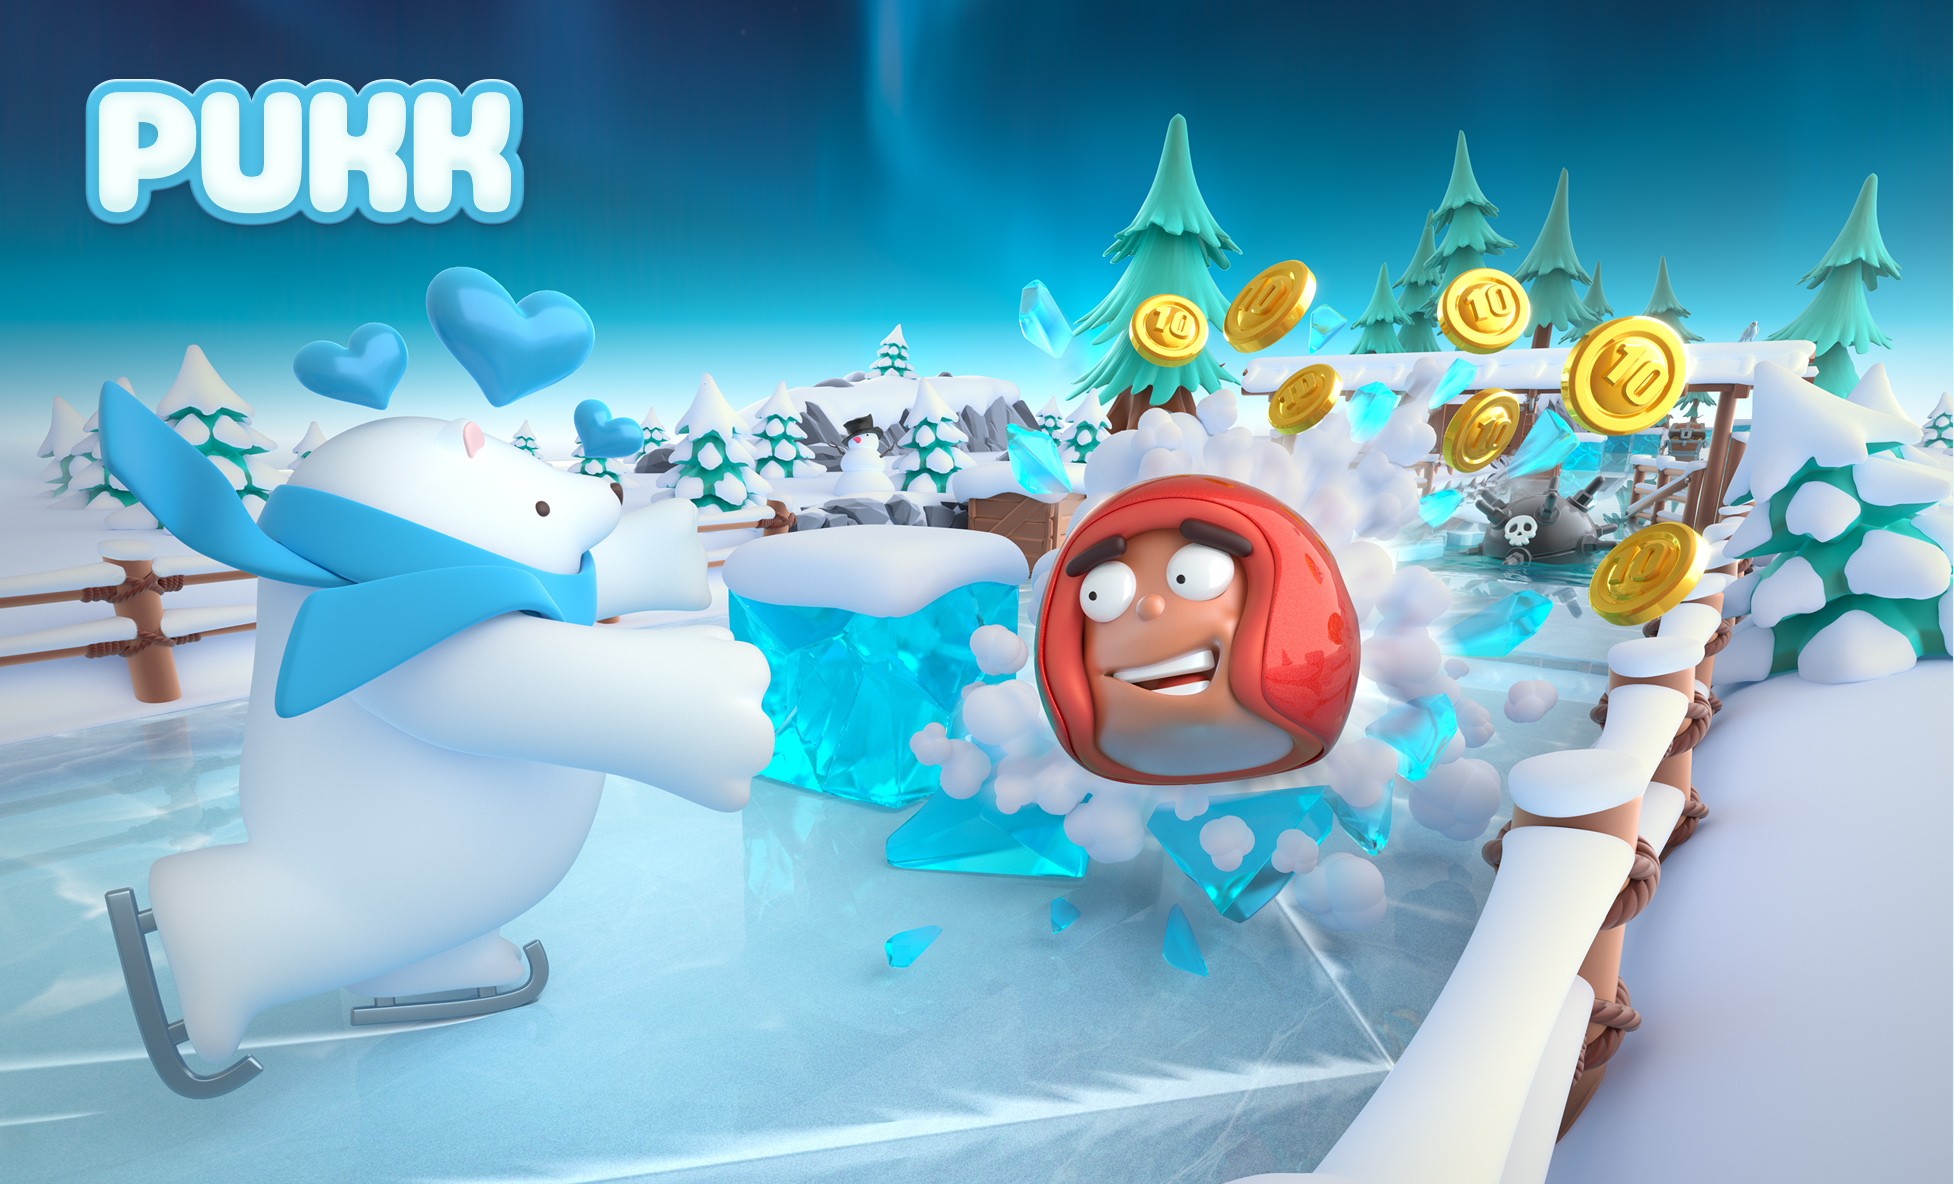 Pukk is an icy block-breaking runner, coming to iOS and Android in November